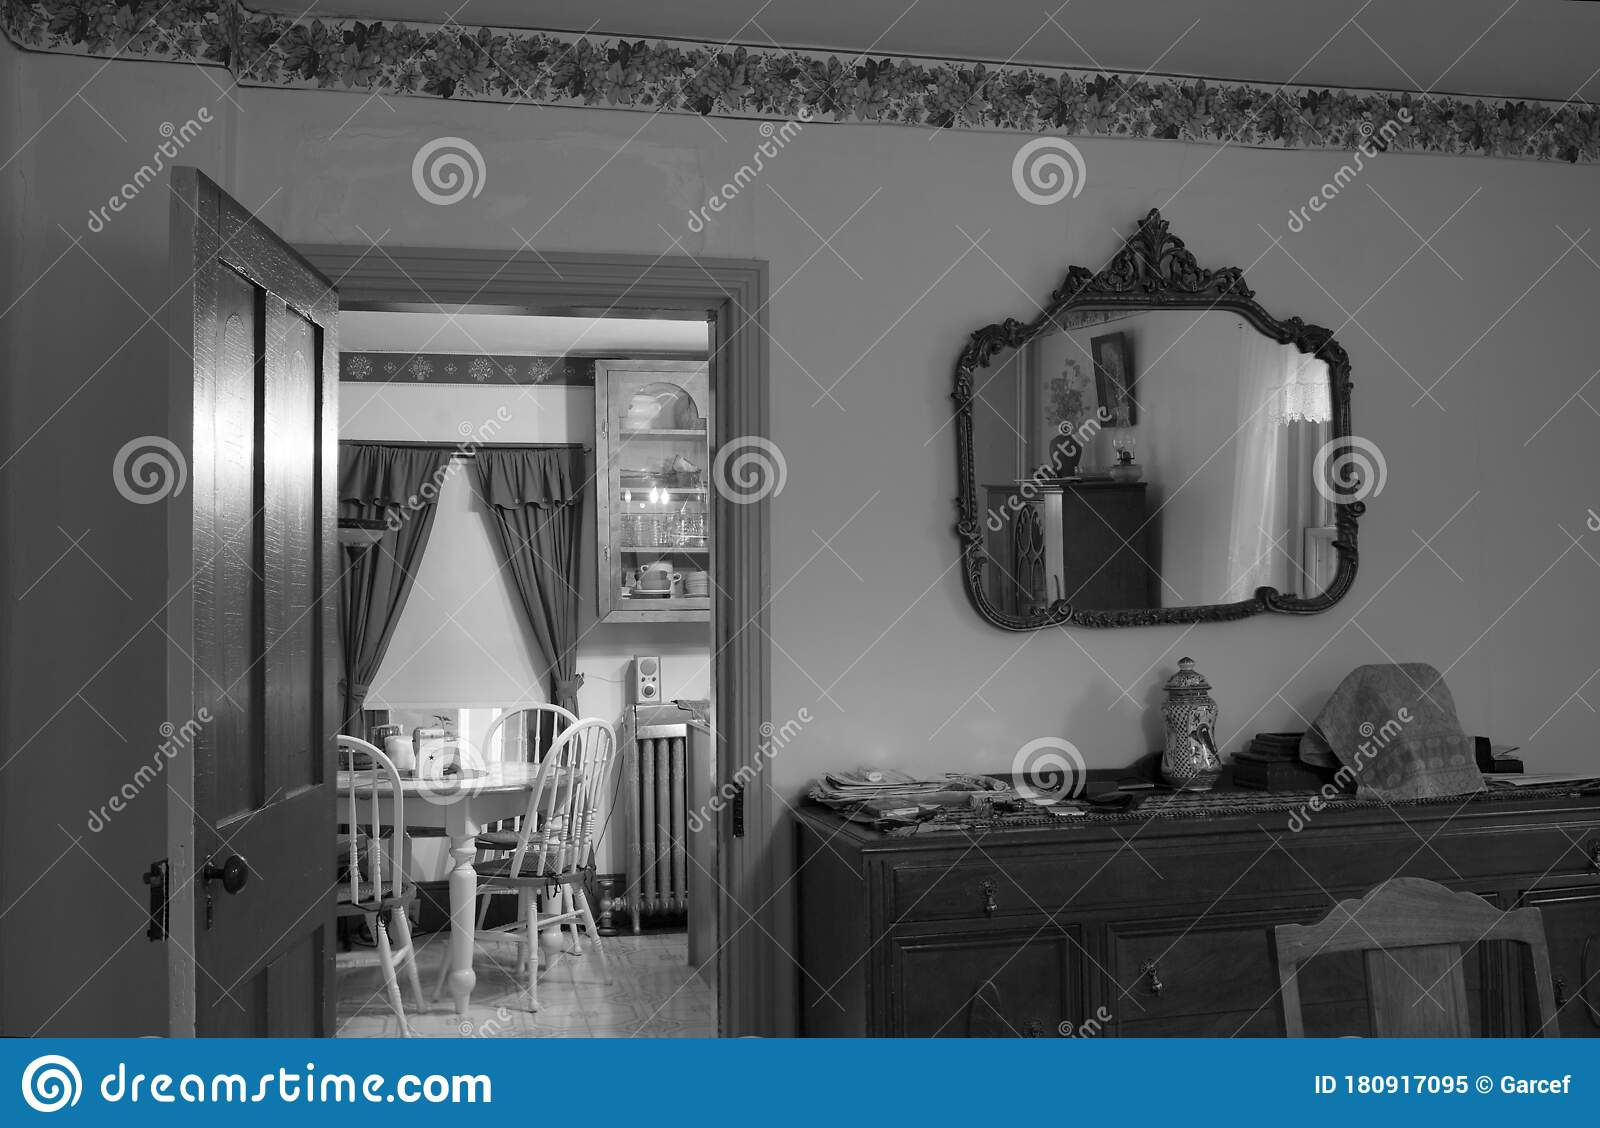 Victorian House Decor In Black And White Editorial Image Image Of Home Victorian 180917095